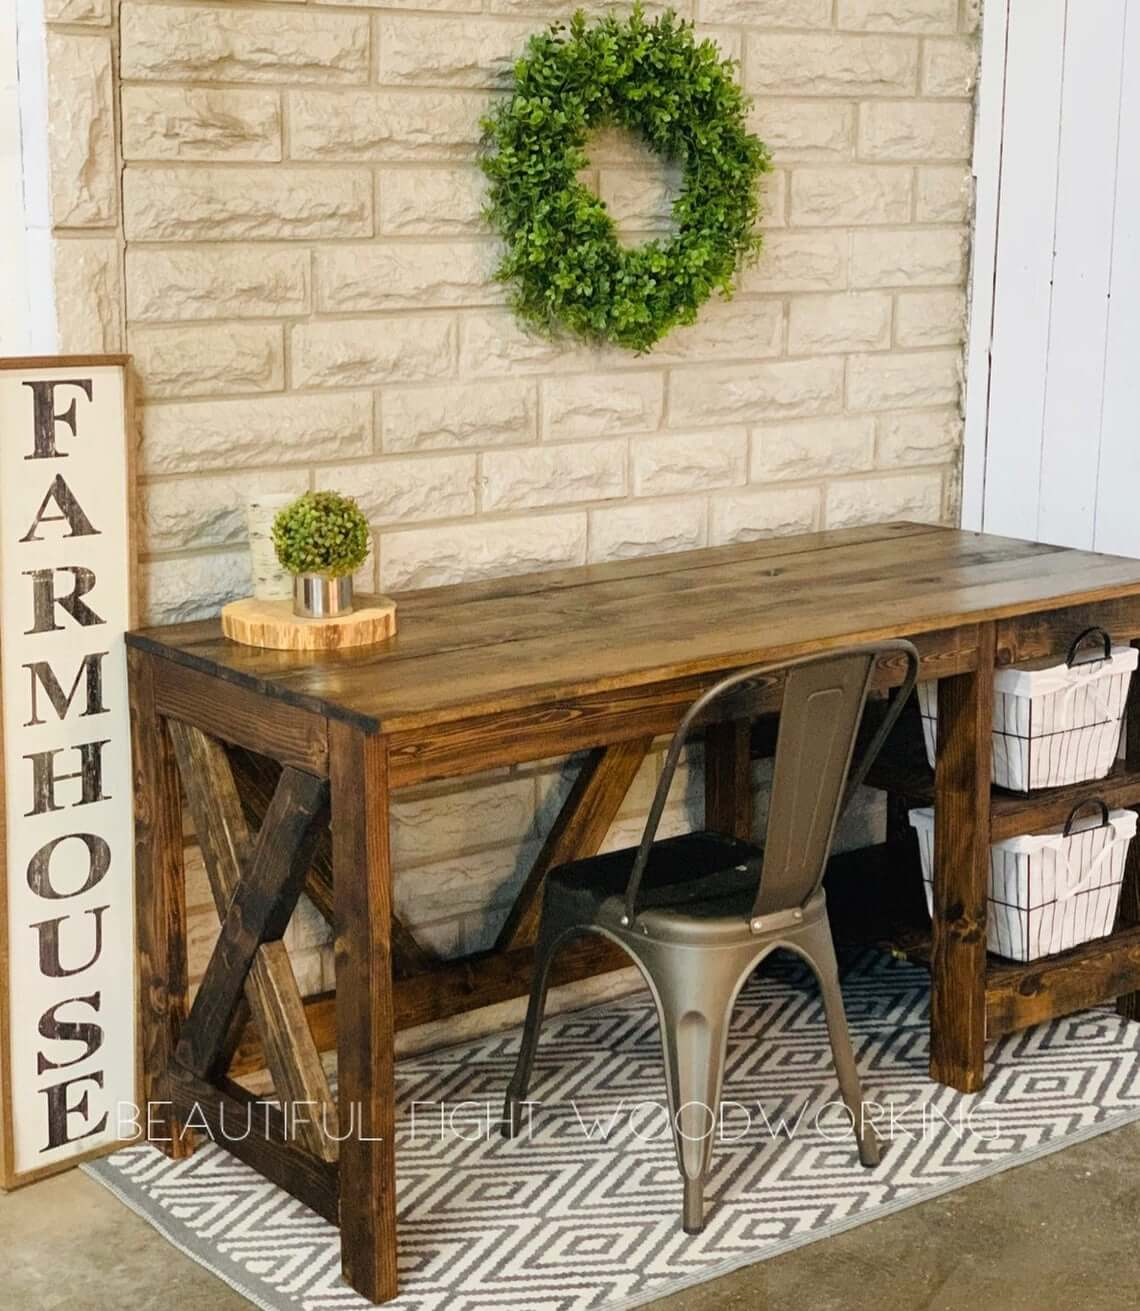 Rustic and Charming Warm Wooden Table with Storage Bins